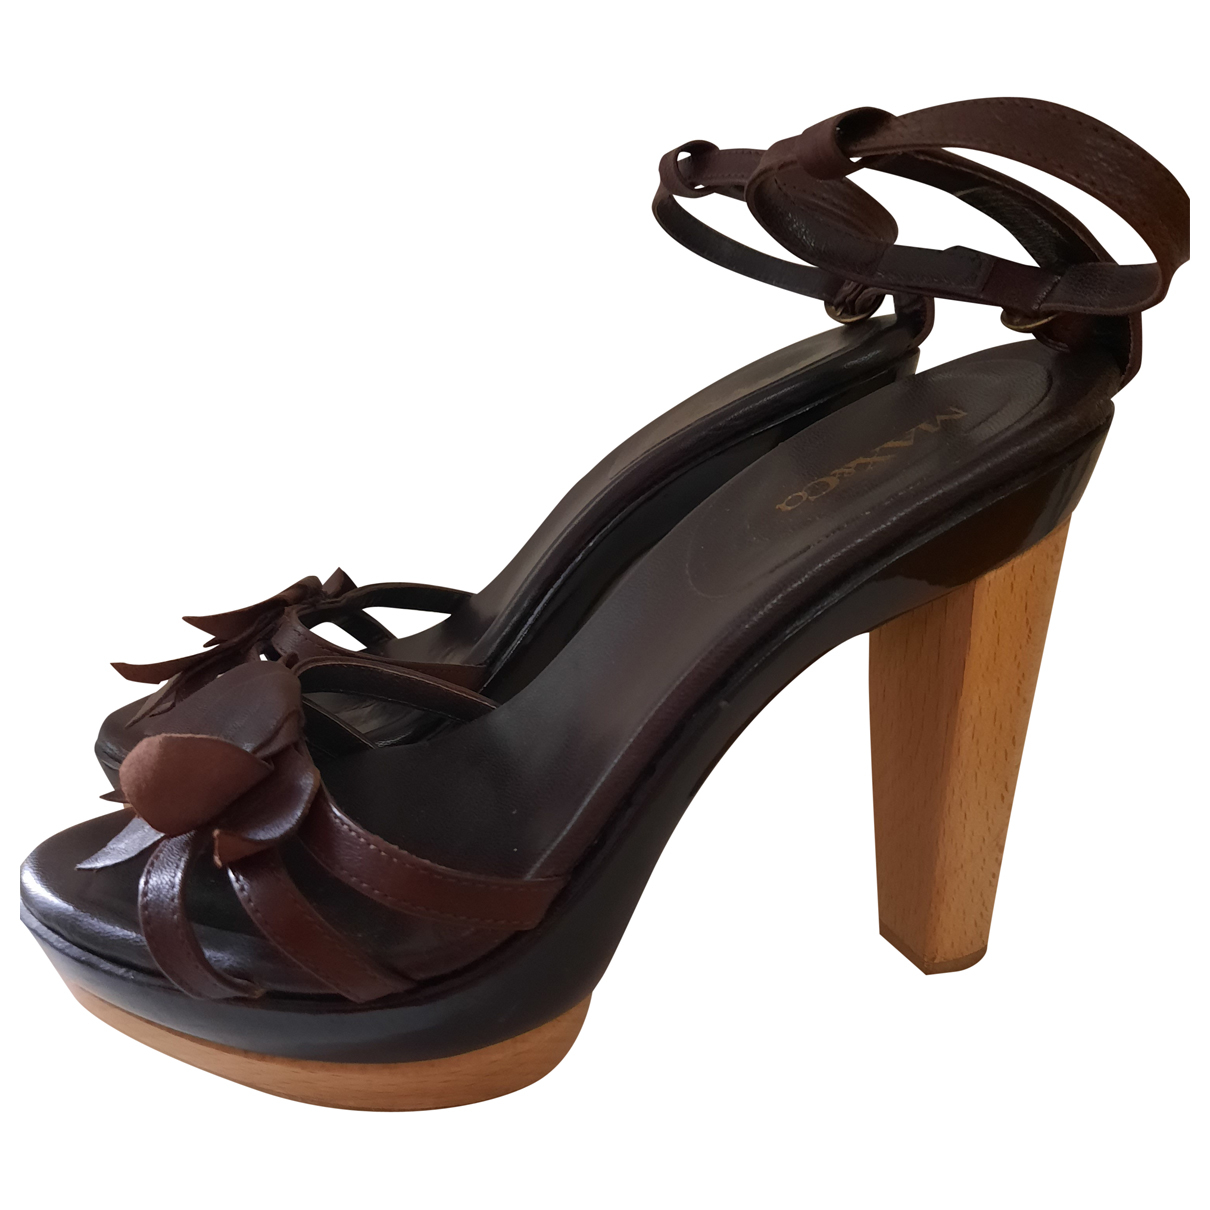 Max & Co N Brown Leather Sandals for Women 38 IT